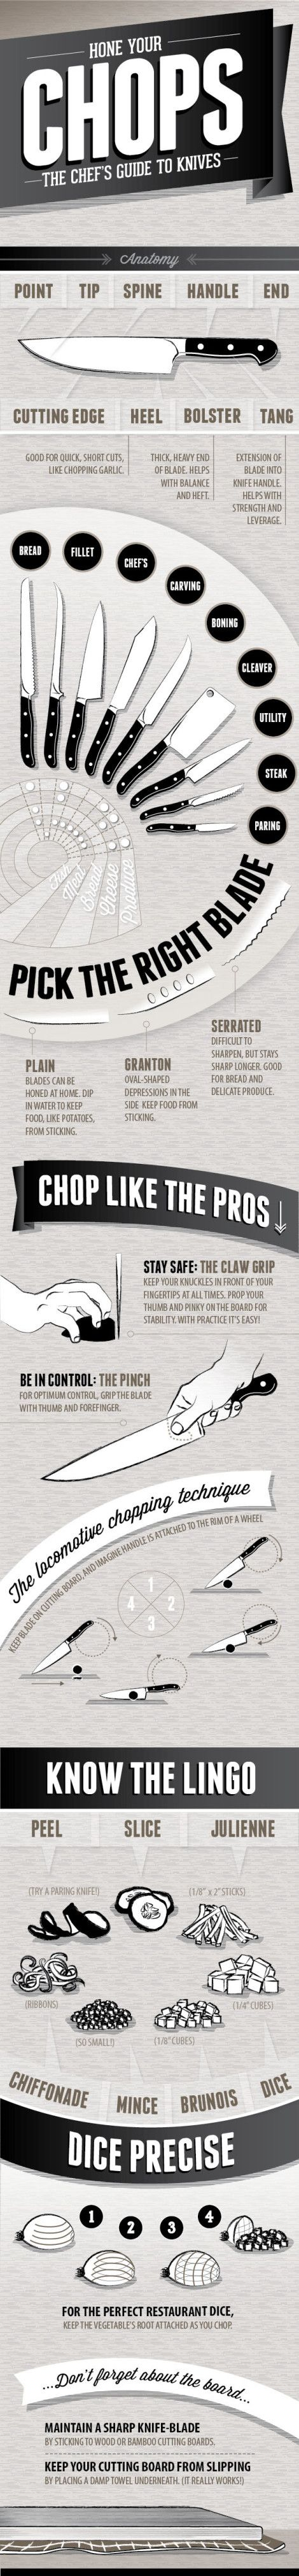 Hone Your Chops